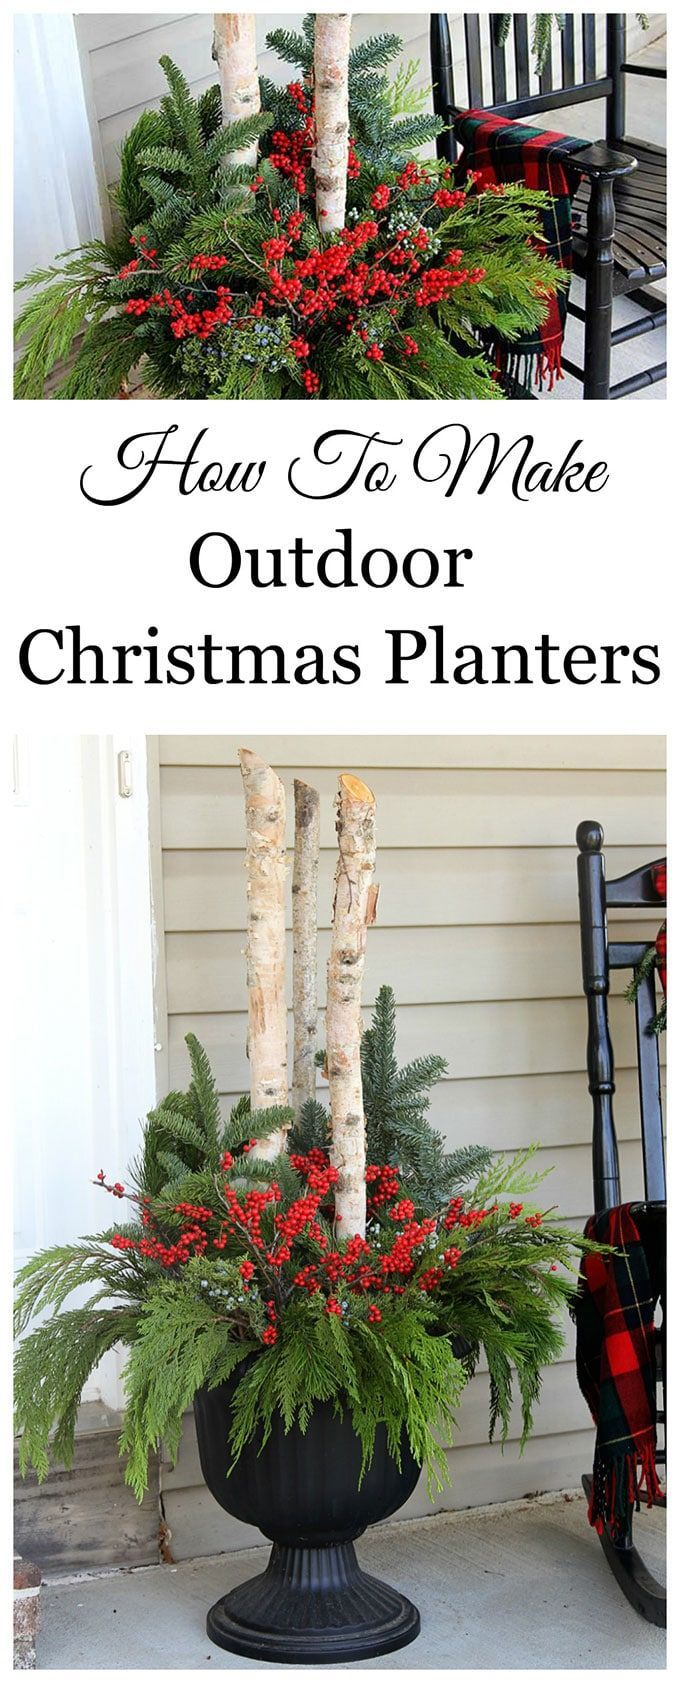 Learn how to make these beautiful outdoor Christmas planters made with Birch branches and Winterberry. A quick and easy accent for your holiday porch decor. #ChristmasDecor #porch #porchdecor #containergardening   #winterdecor #gardeningideas